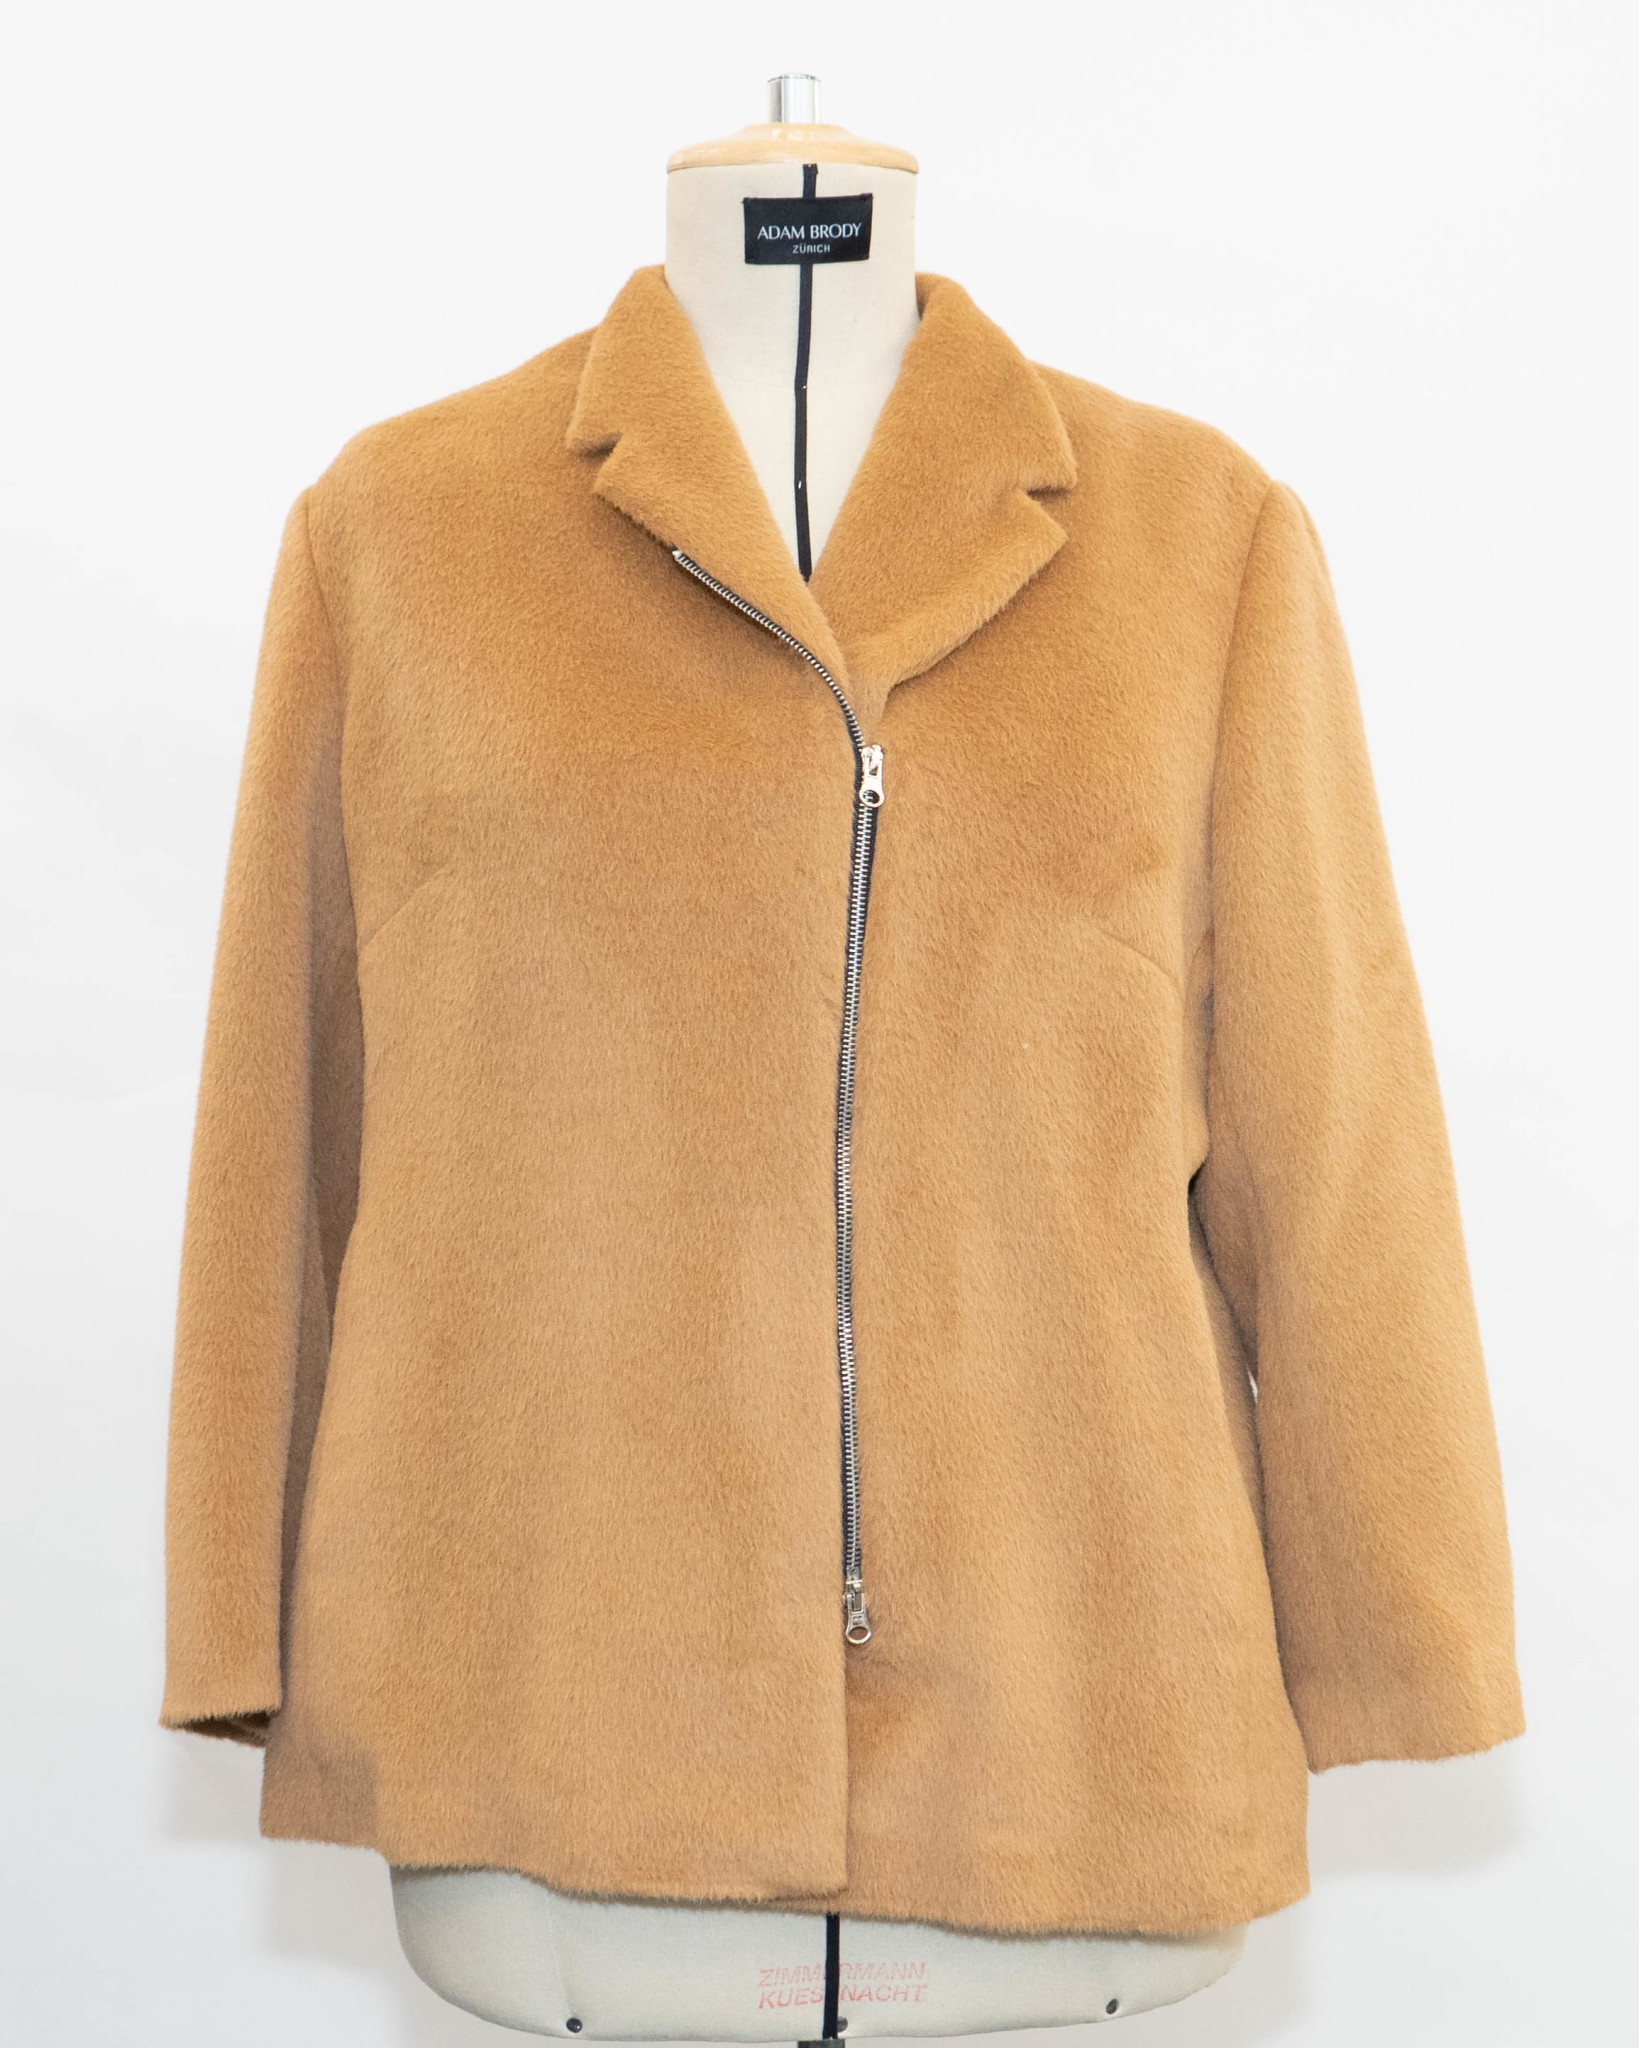 MADISON Jacket in Camel-Woolmix-1